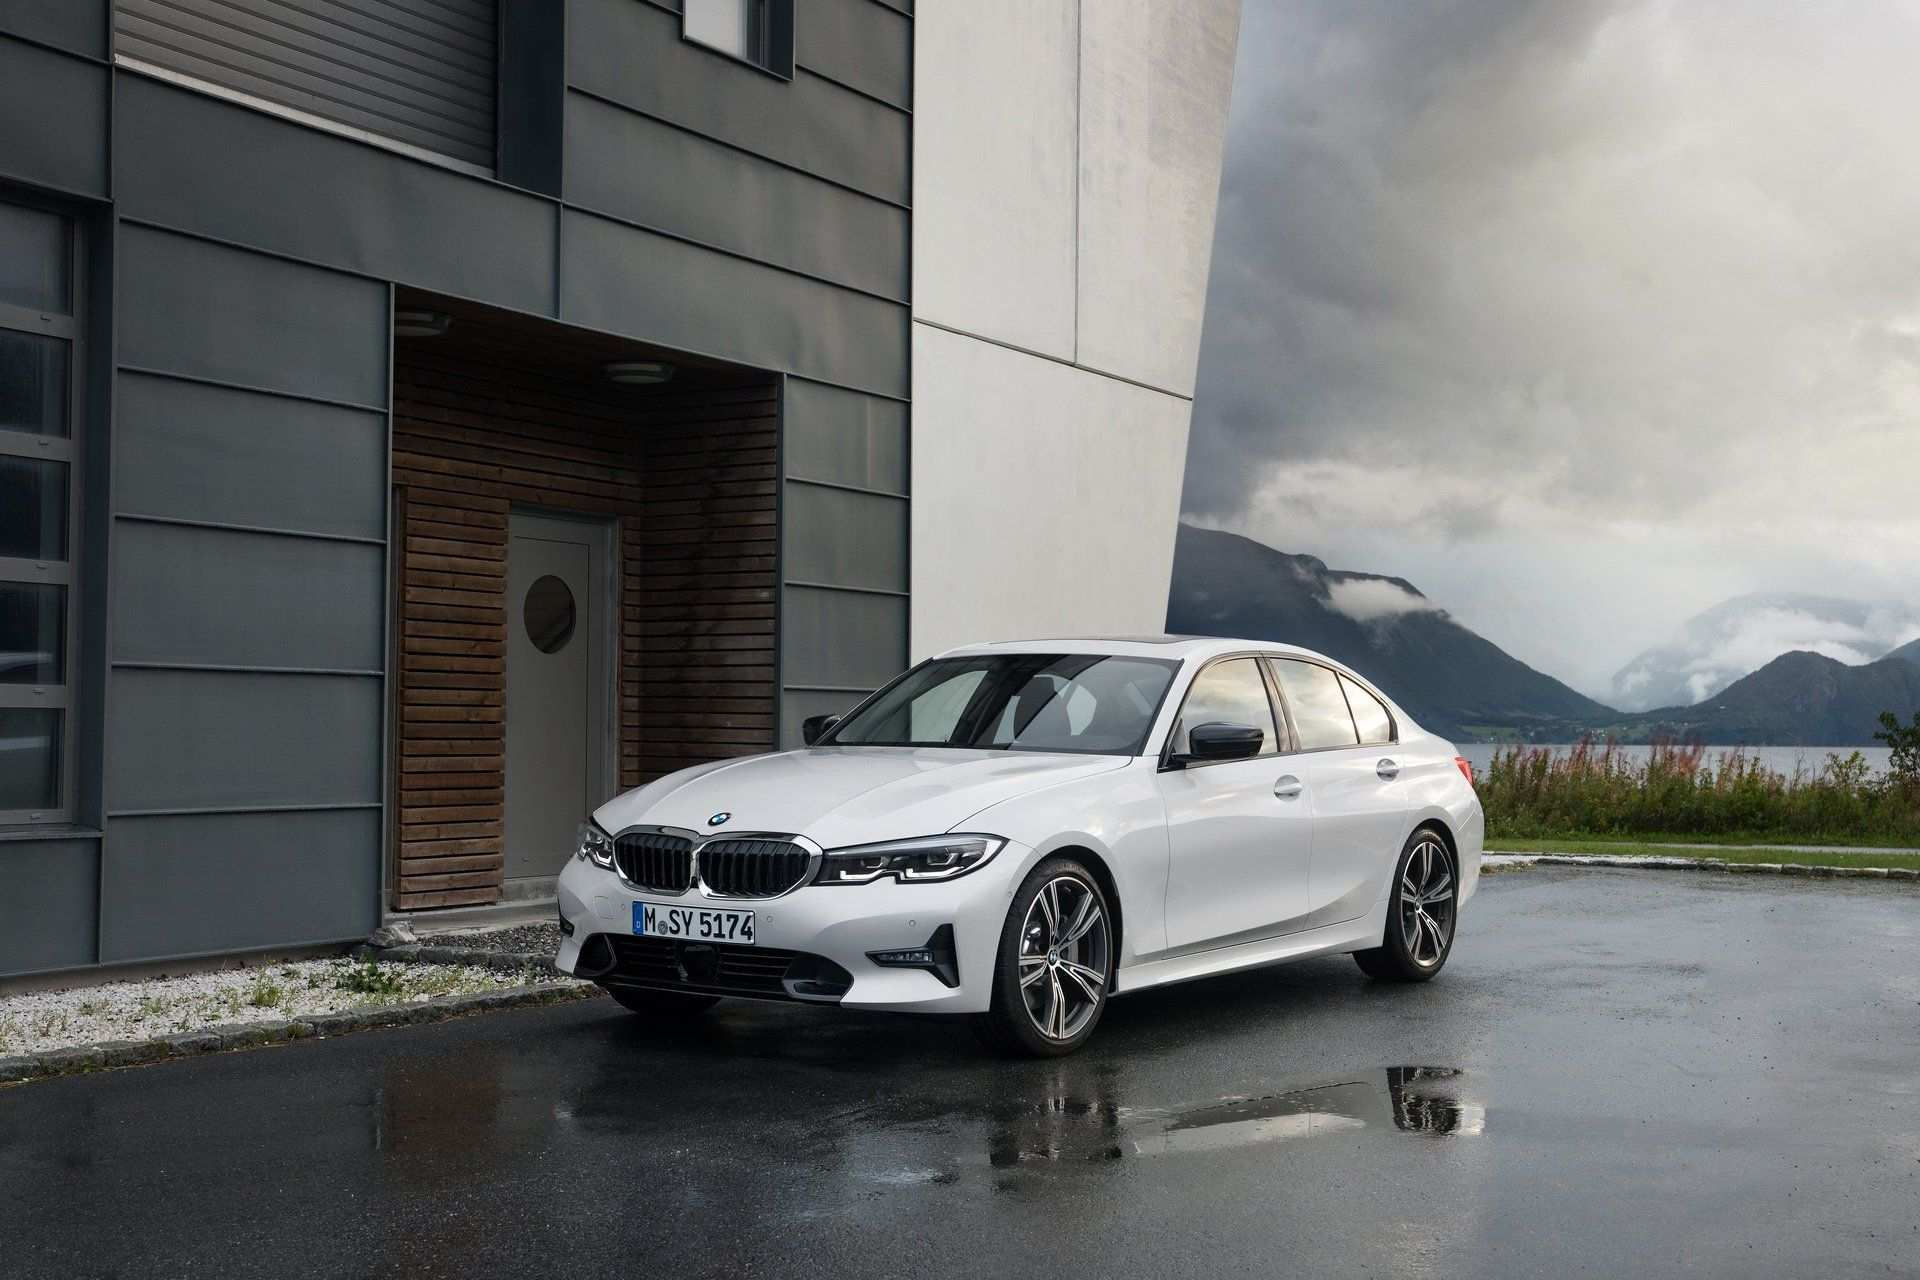 70 The Bmw Ts Safari 2019 Review Review for Bmw Ts Safari 2019 Review